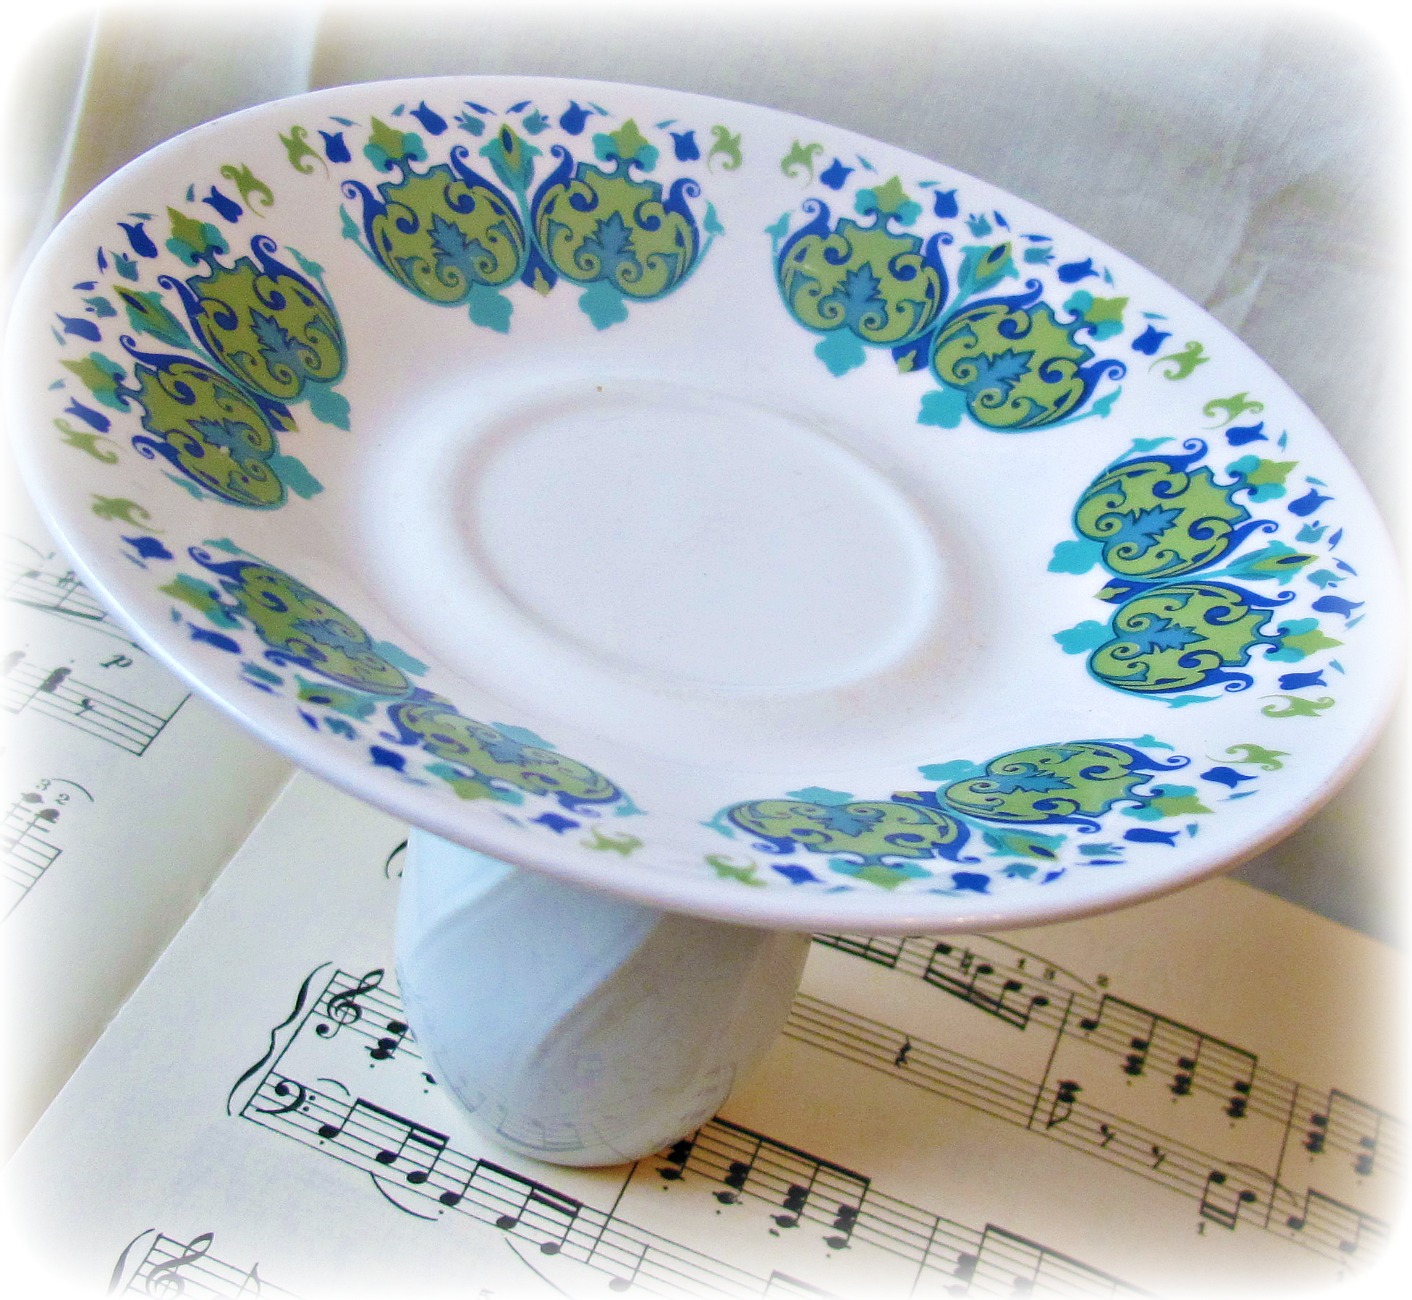 image domum vindemia cupcake stand dessert retro blue green 70s white avocado party favour wedding